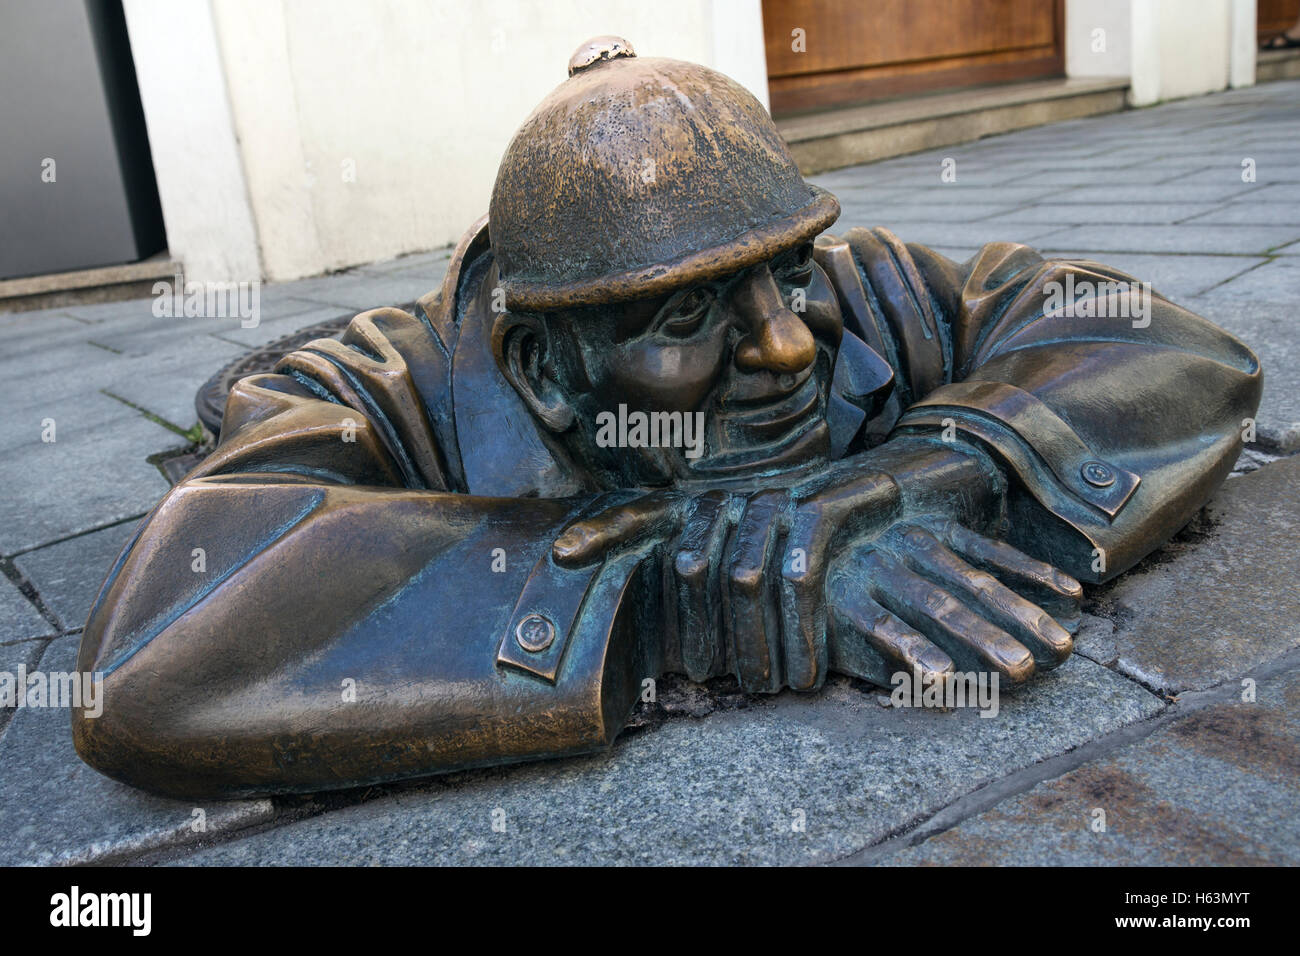 A bronze statue representing a street worker emerging from a manhole. On a street in the city centre of Bratislava, - Stock Image